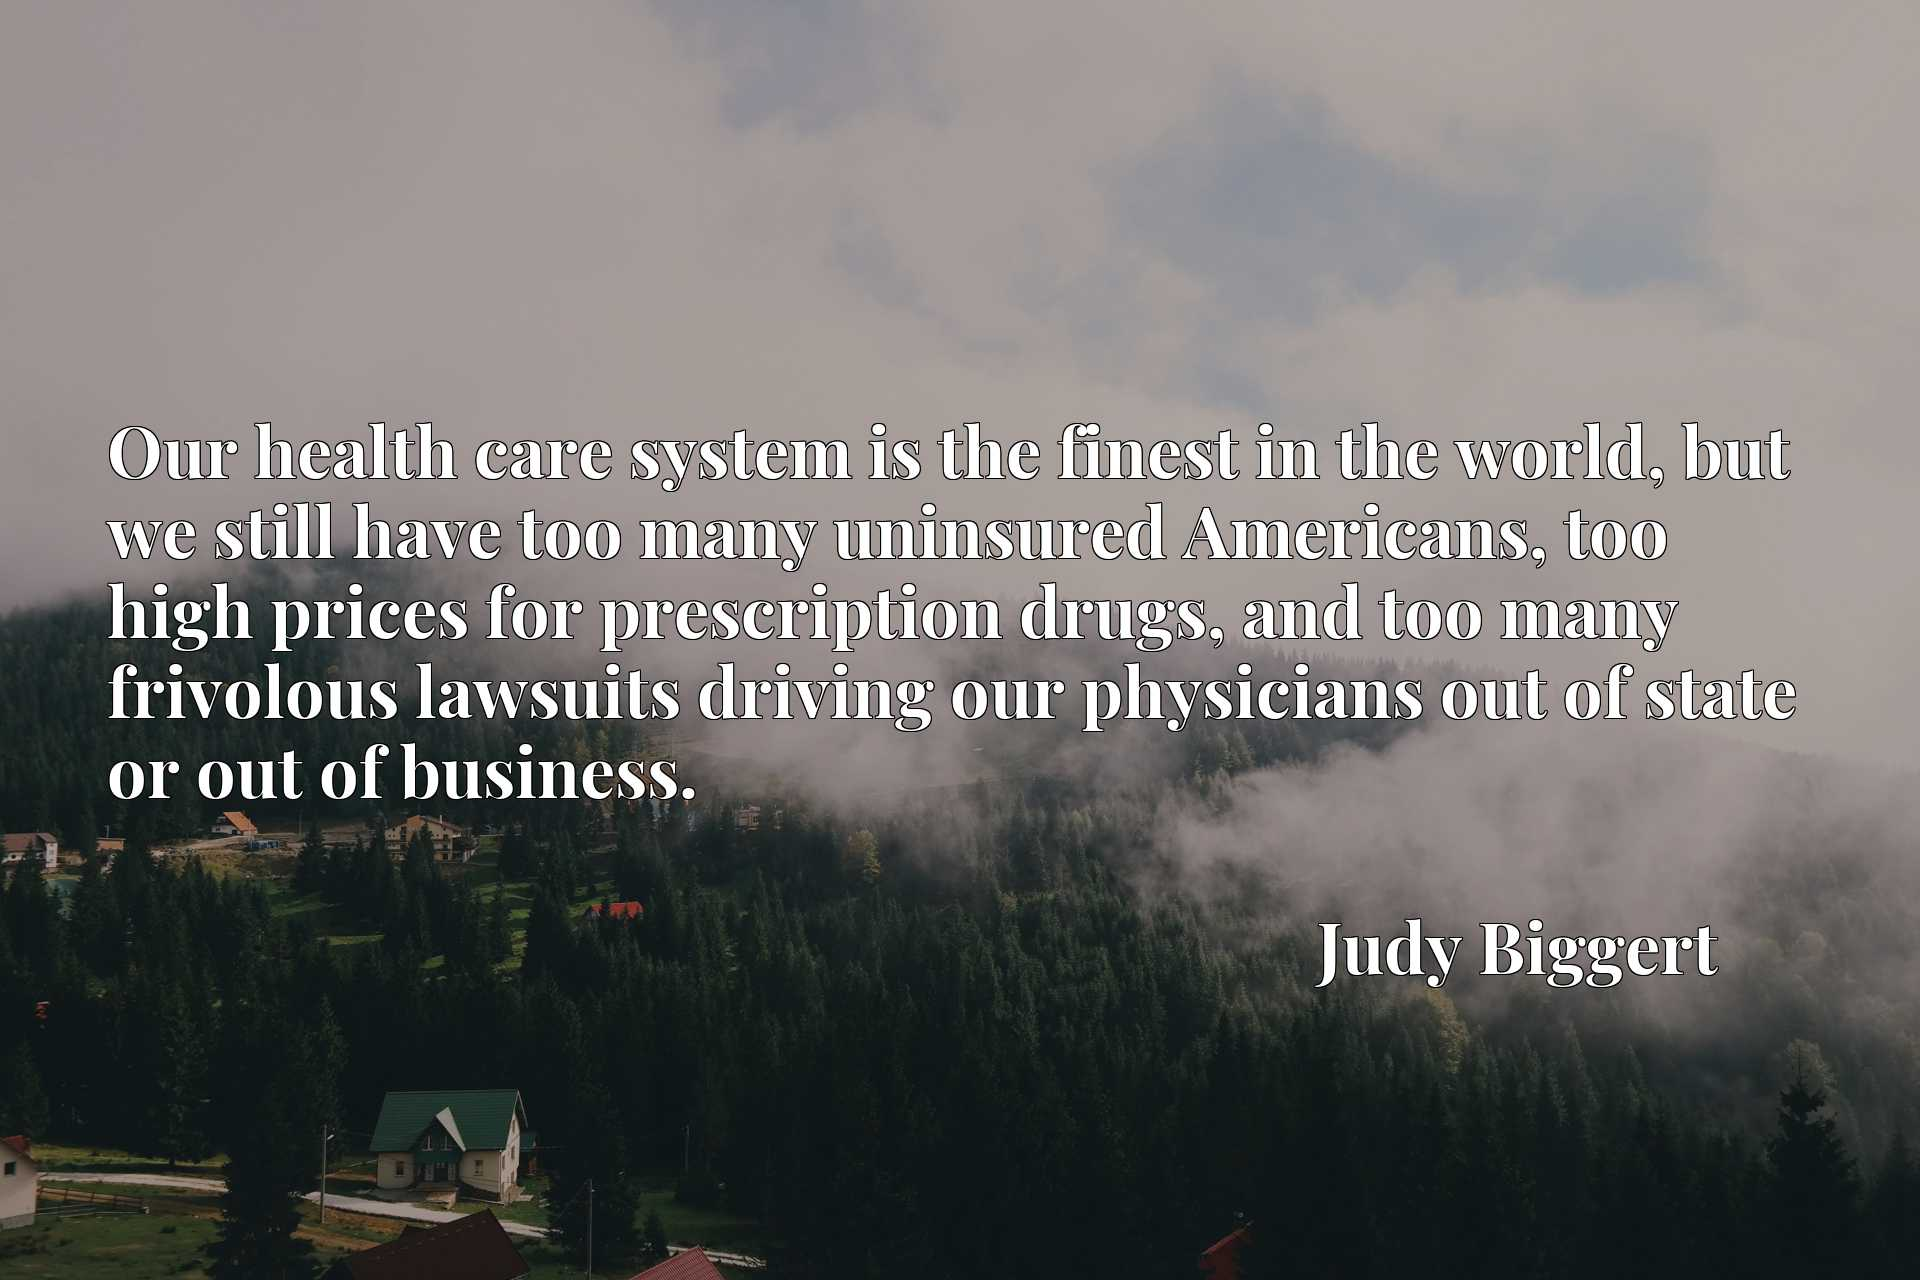 Our health care system is the finest in the world, but we still have too many uninsured Americans, too high prices for prescription drugs, and too many frivolous lawsuits driving our physicians out of state or out of business.